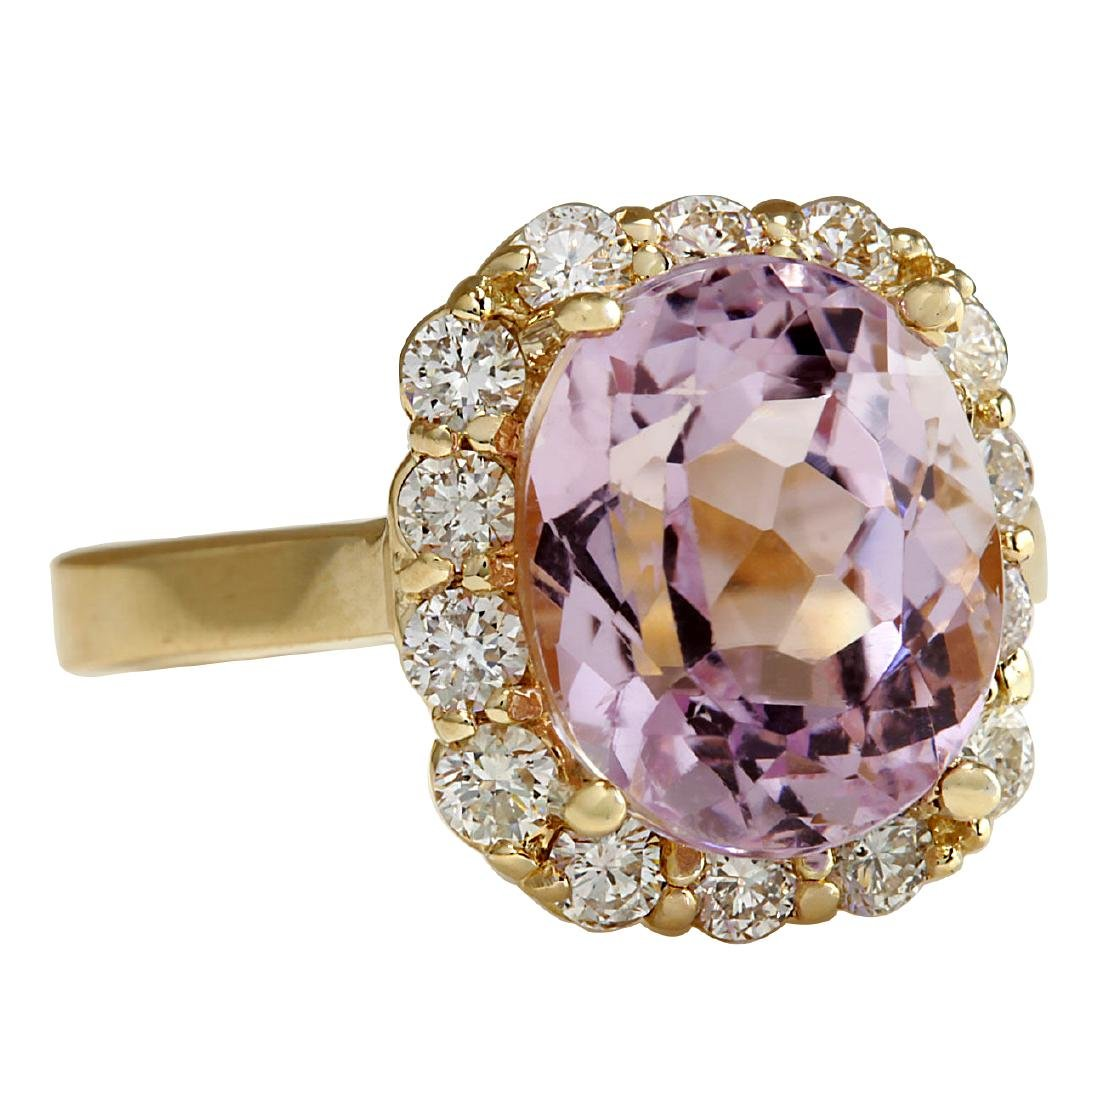 8.06CTW Natural Kunzite And Diamond Ring 18K Solid - 2